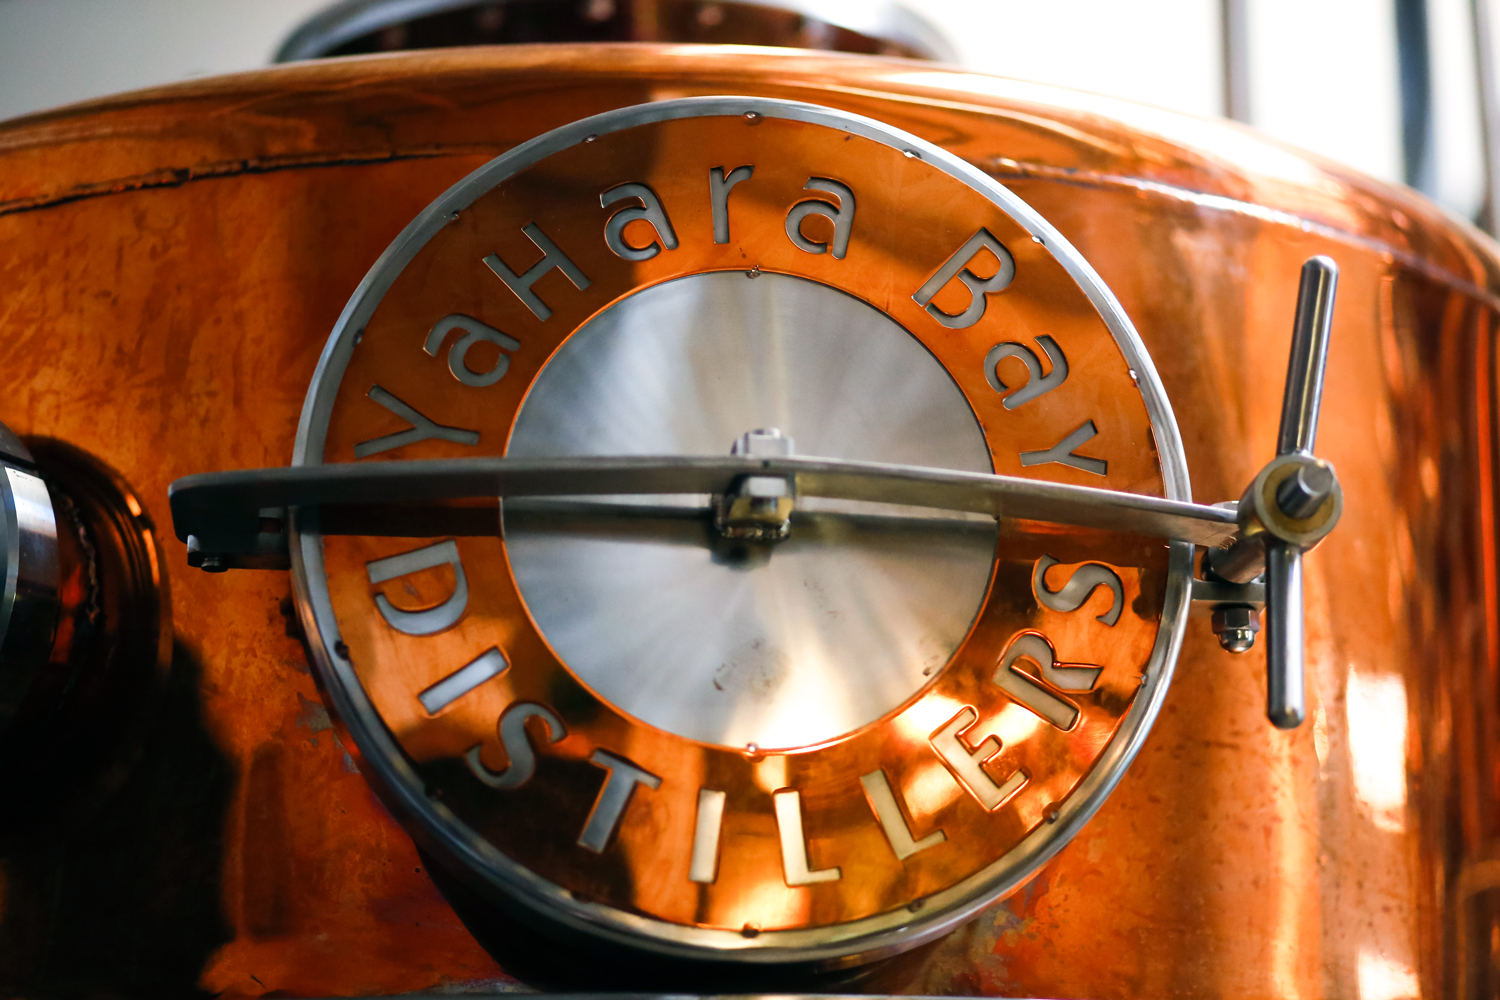 yahara-bay-distillery-madison-wi-fitchburg-marketing-commercial-photography-ruthie-hauge.jpg